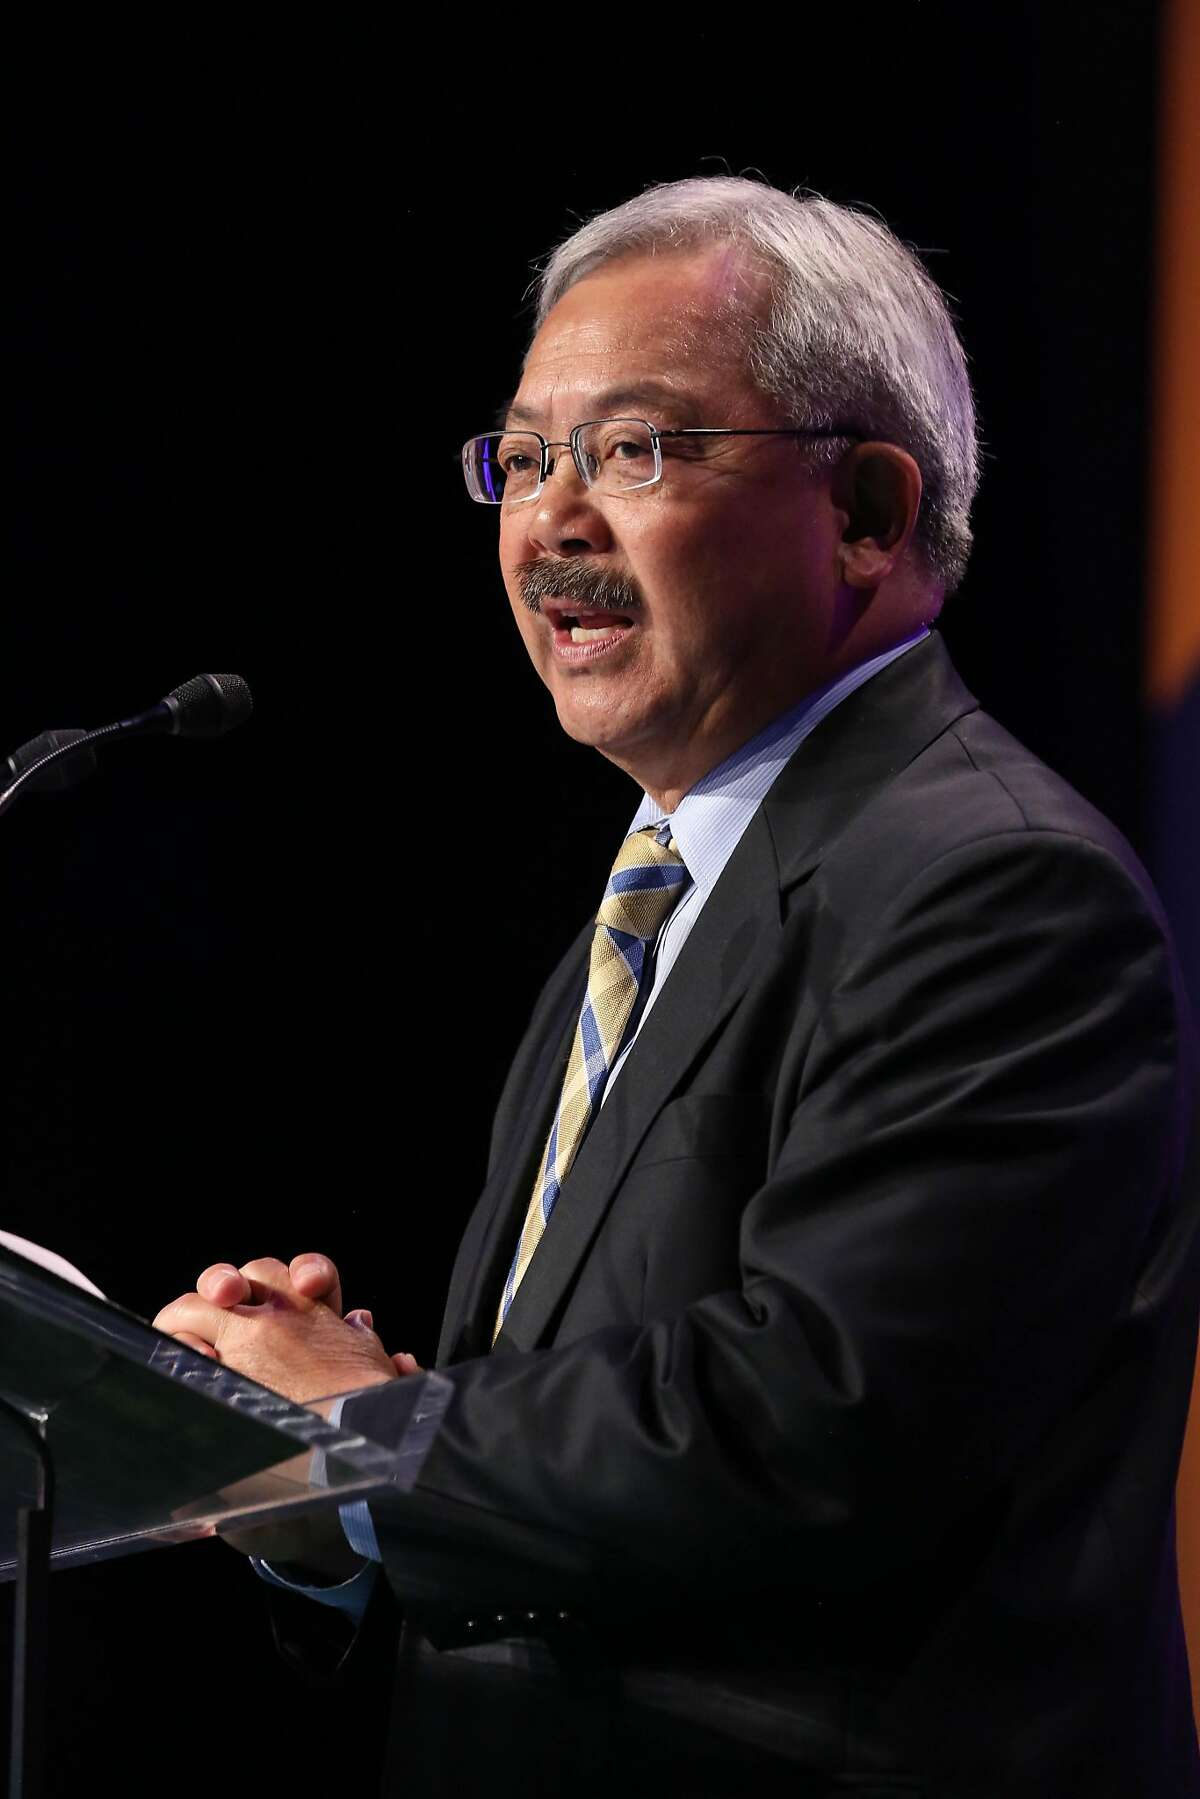 Mayor Ed Lee, who recently committed to join the Paris Agreement with 270 other mayors, says it is a way of stepping up and making sure important data and information is available.